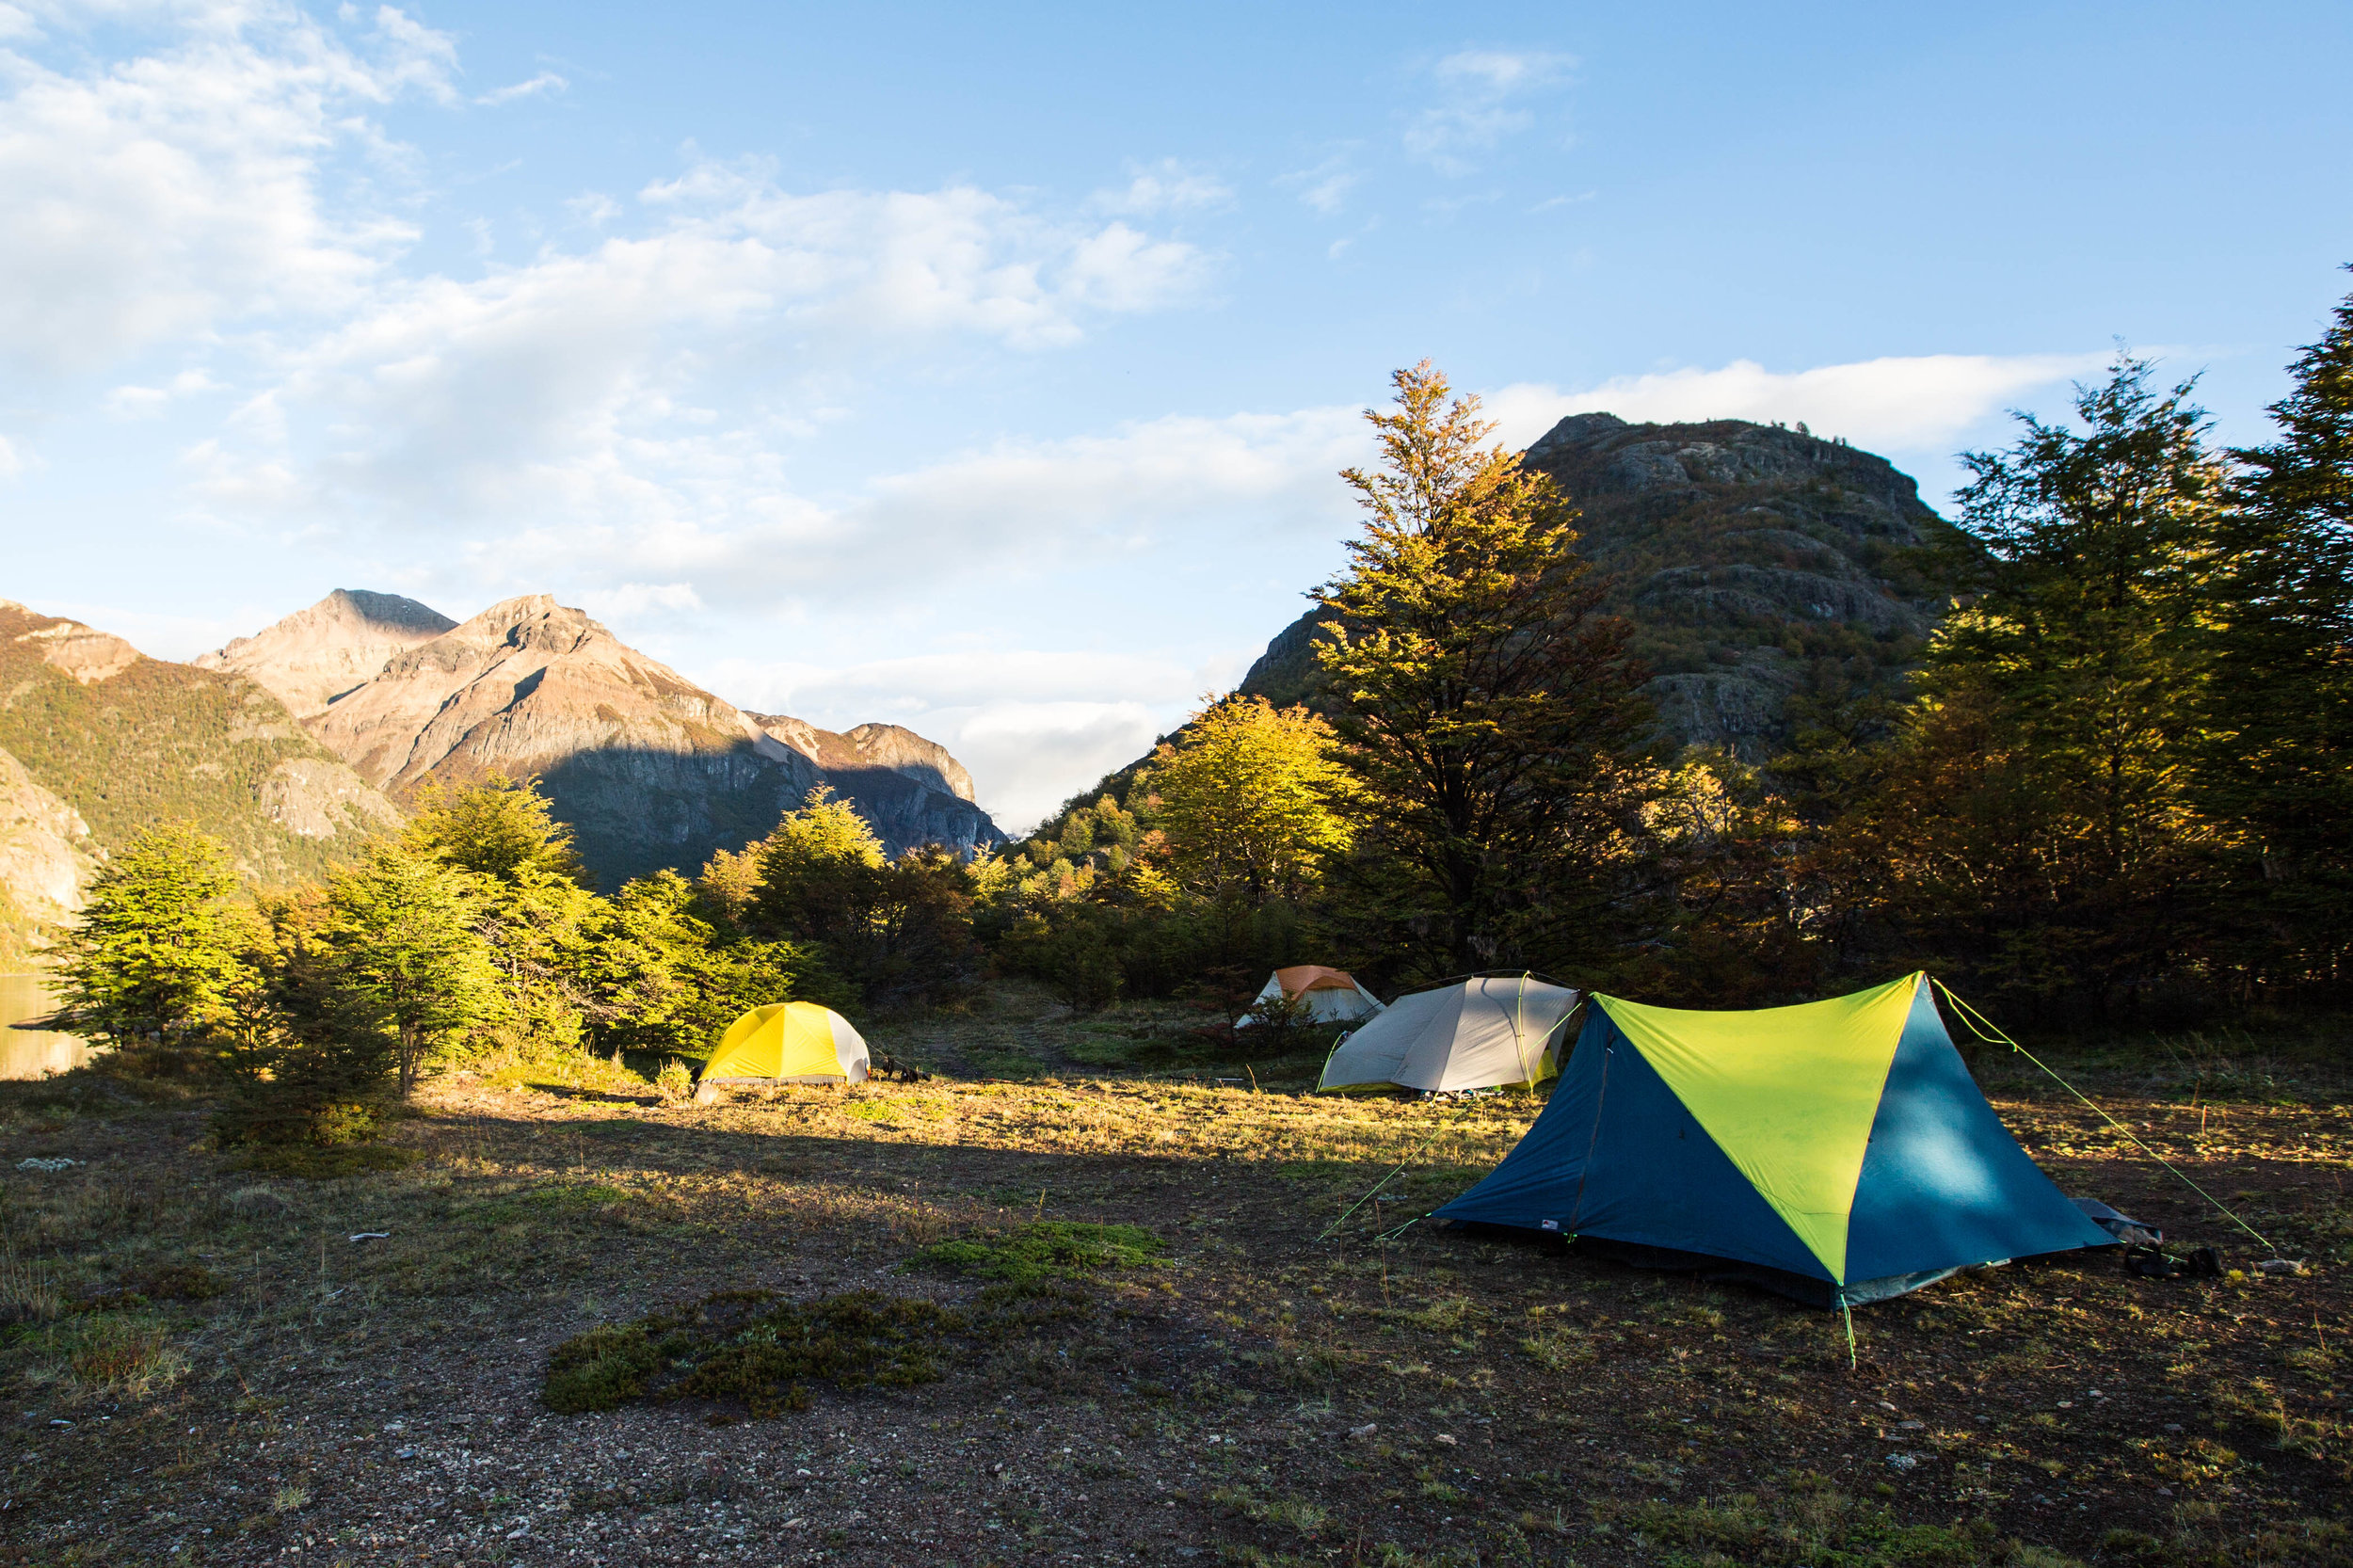 Our first night's camp, with our YAMA Mountain Gear tent